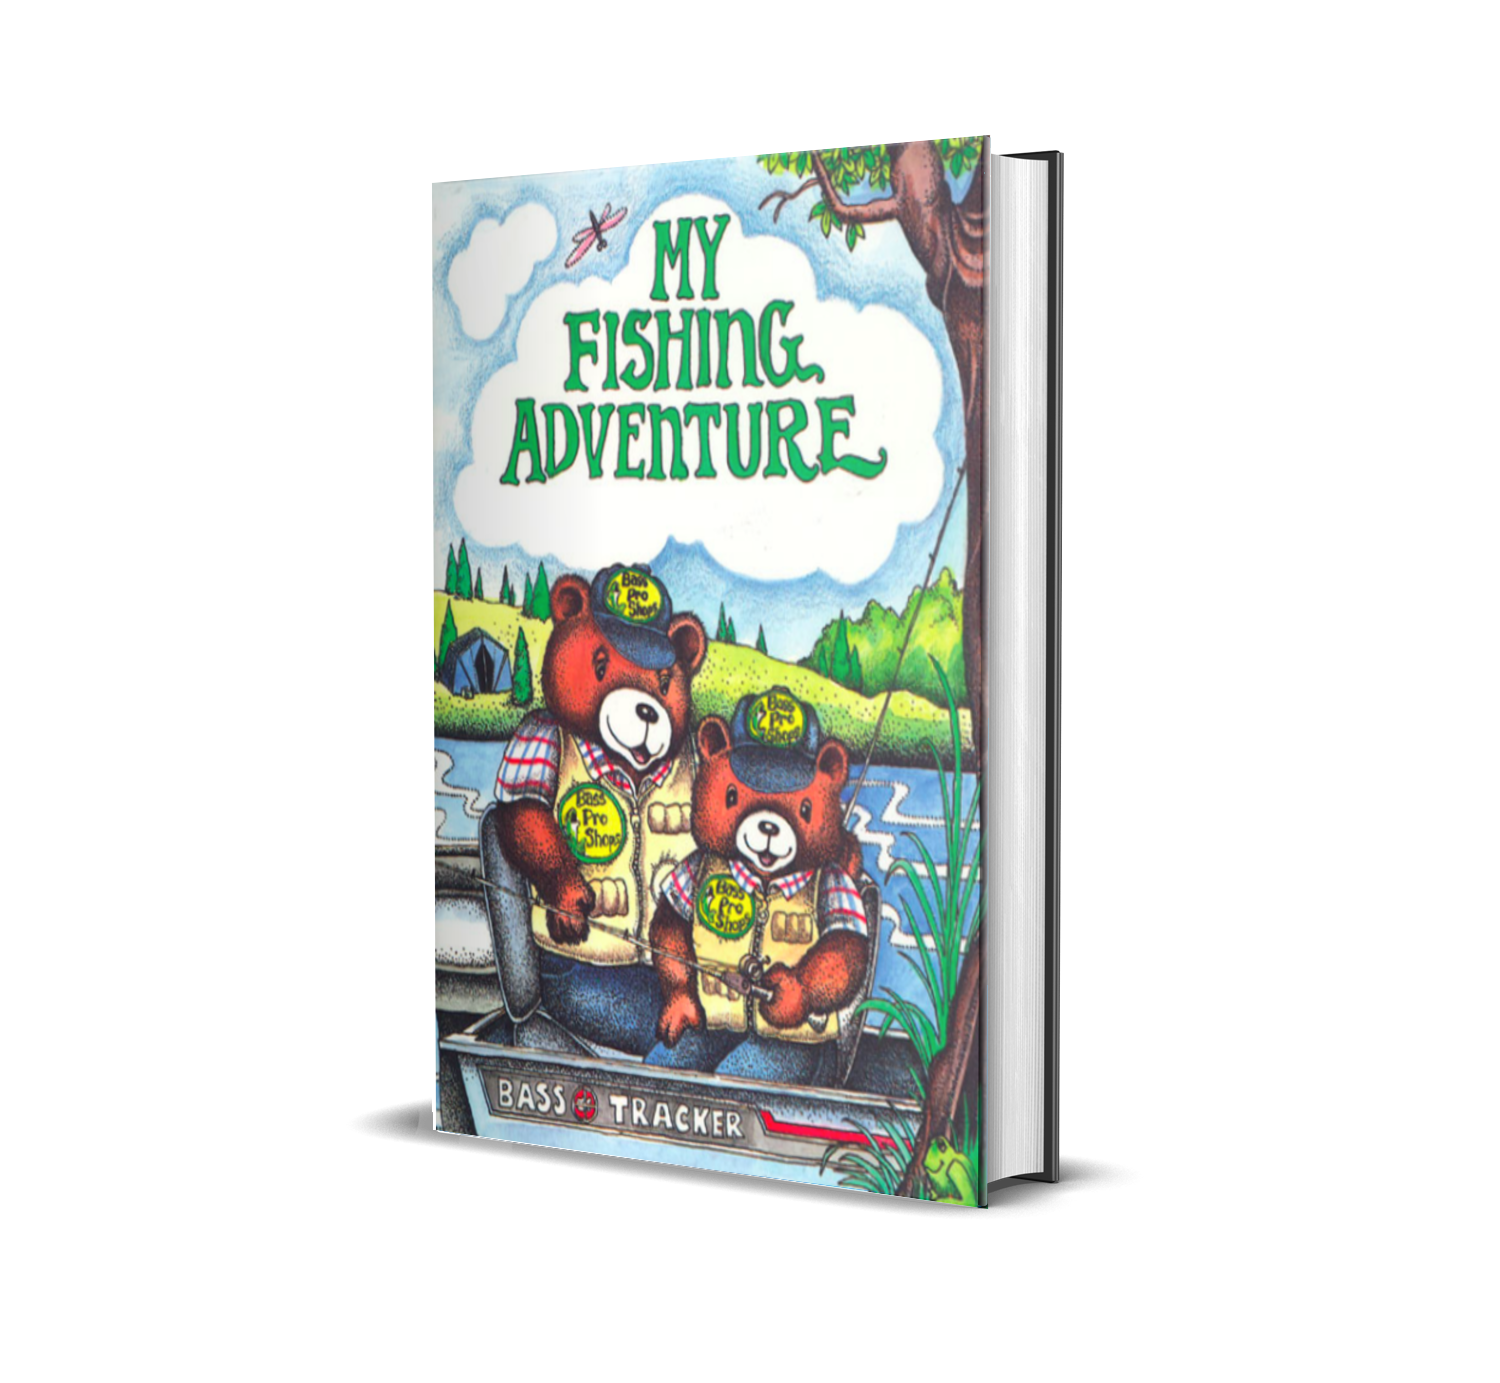 My Fishing Adventure